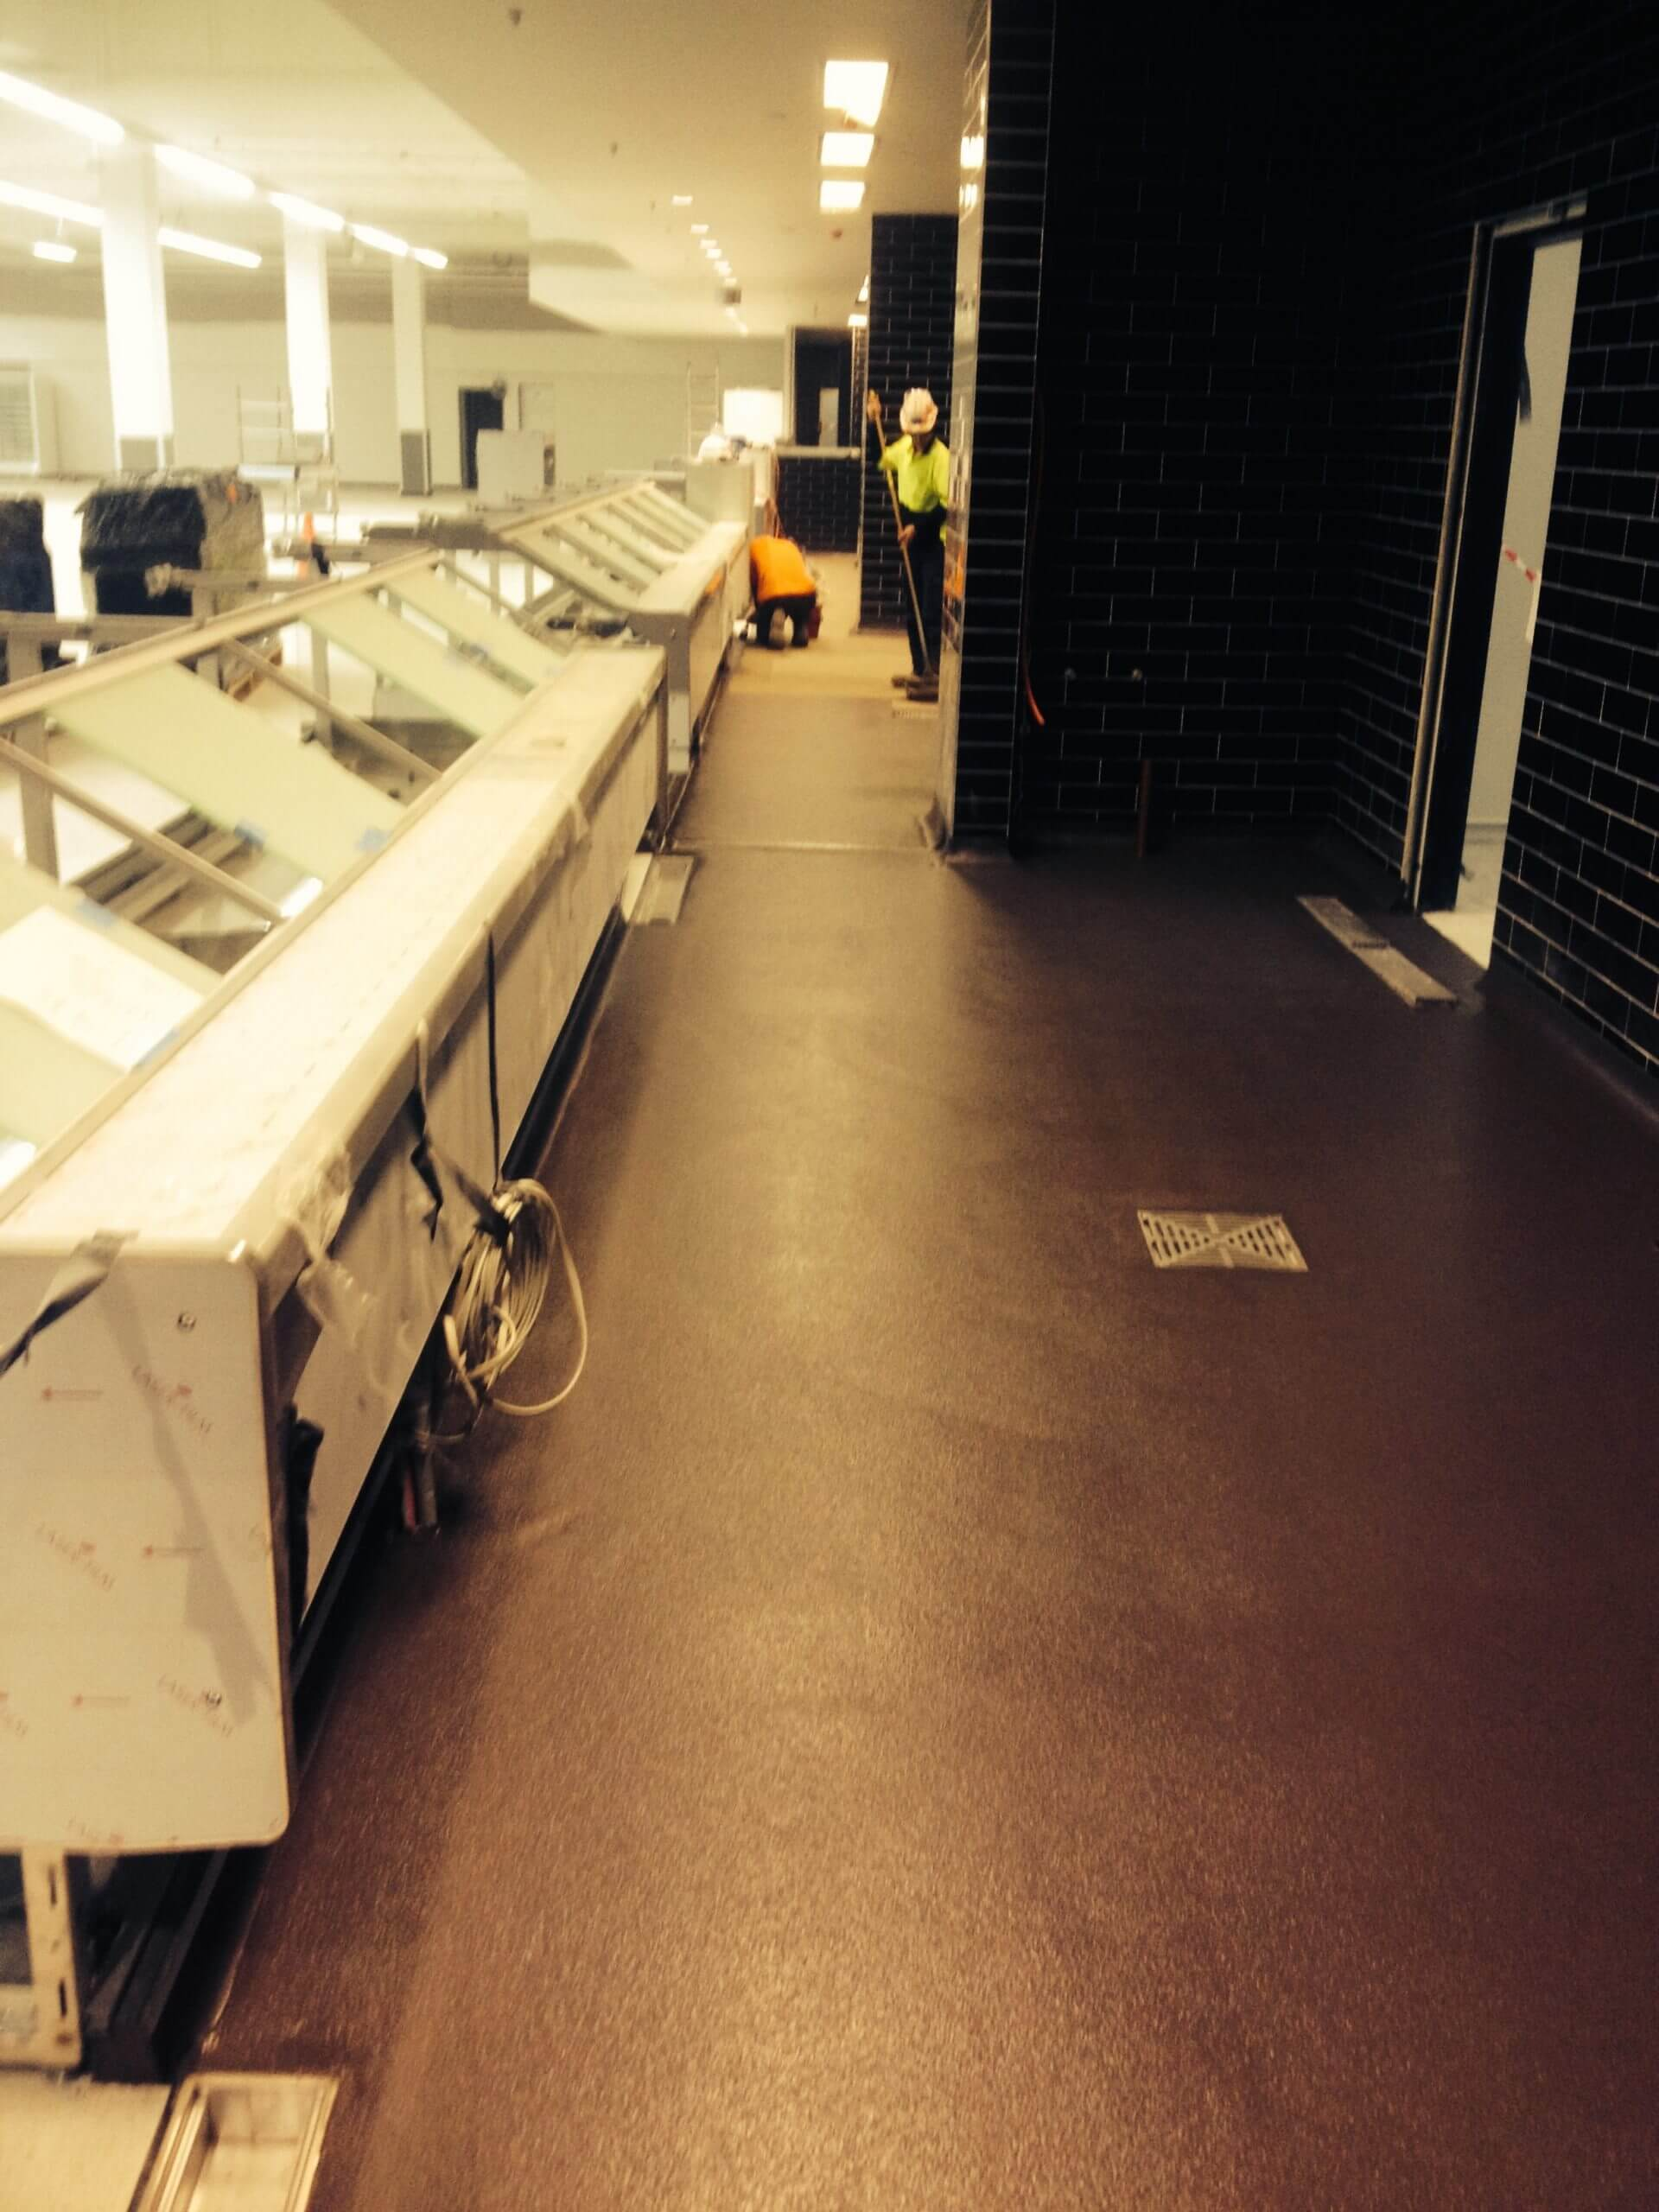 Supermarket Flooring Completed - Flooring Solutions - Remedial Building Services